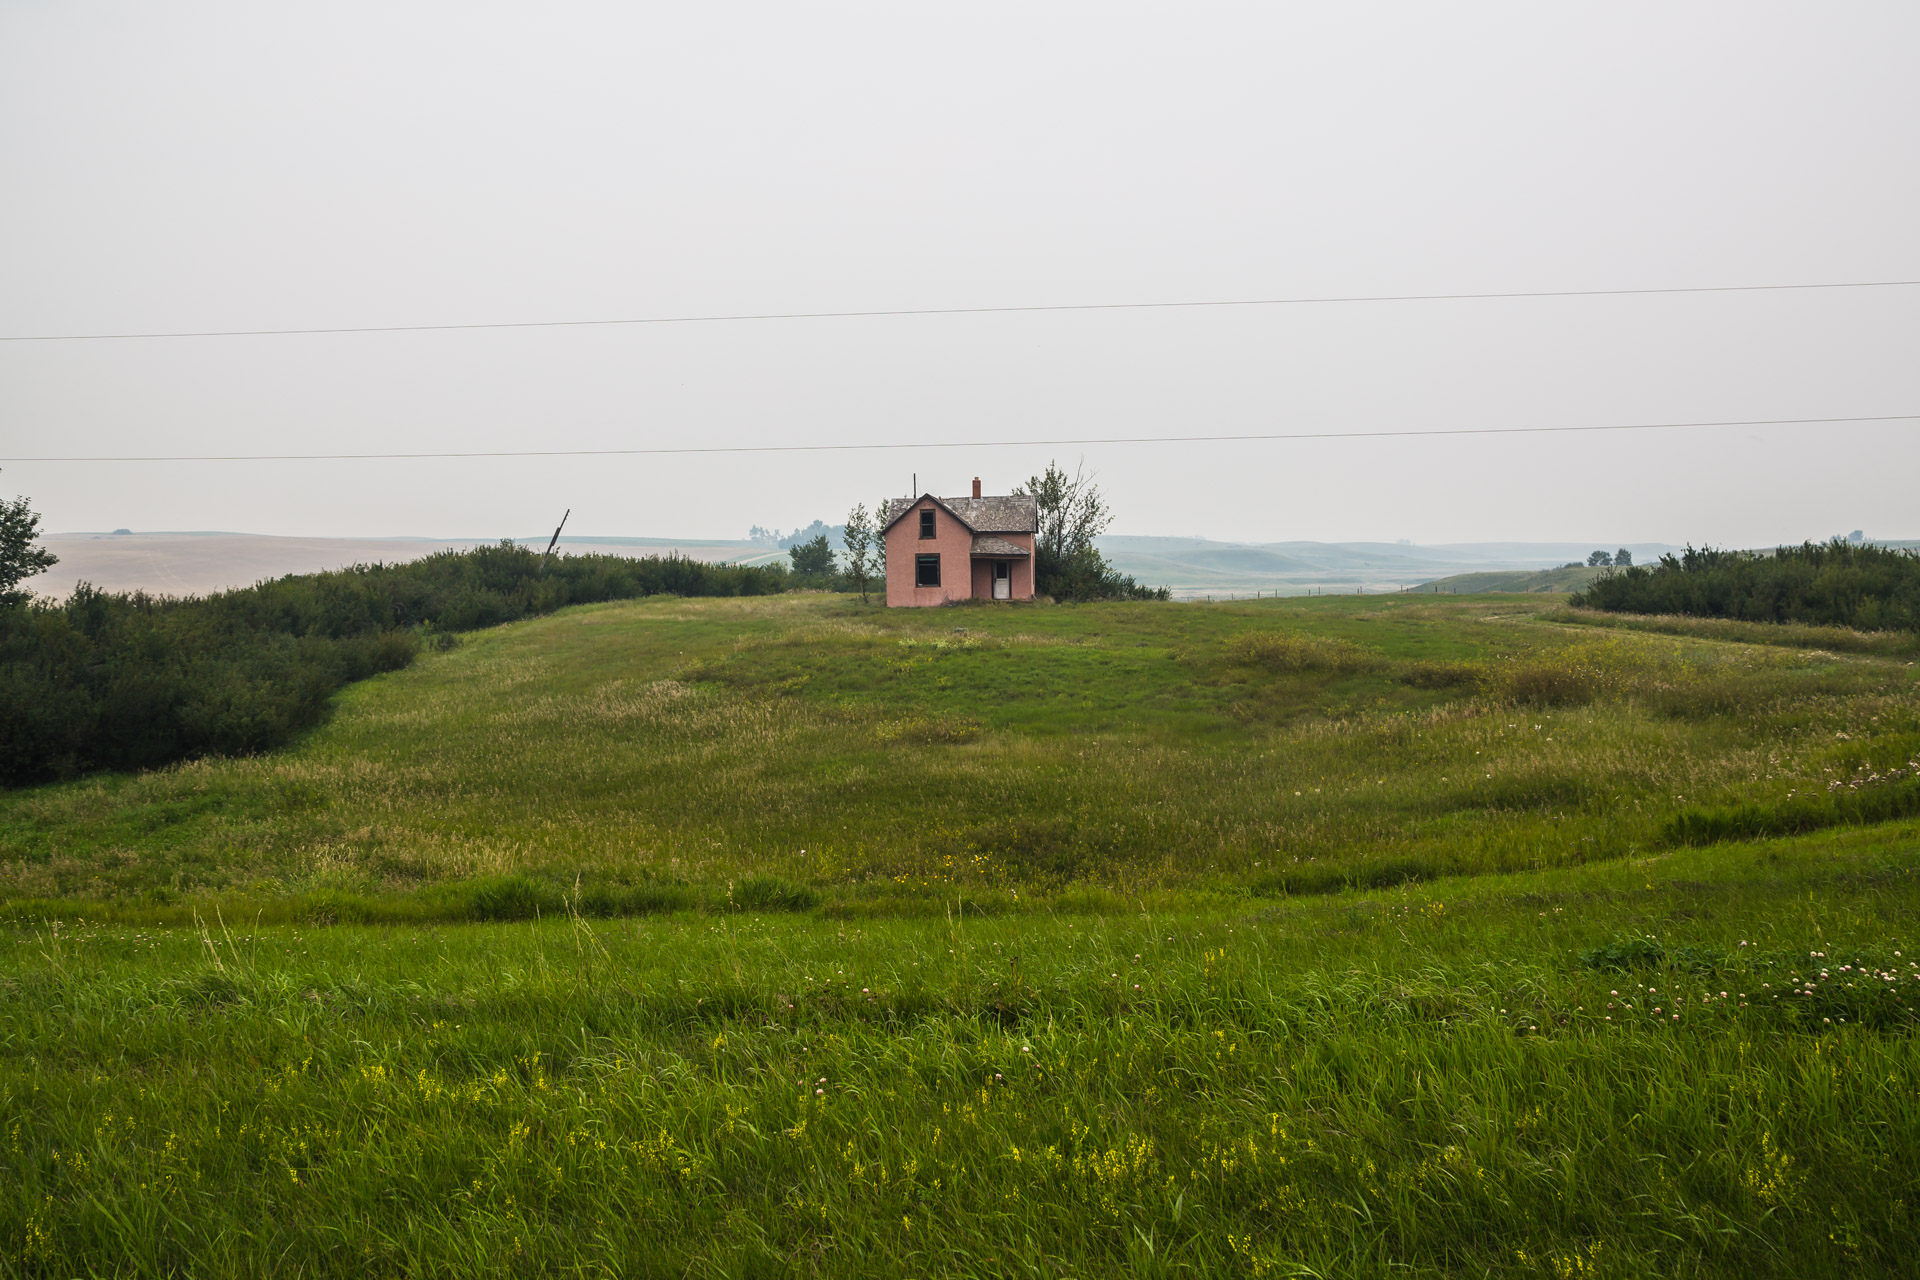 Smokey Pink House (left far)